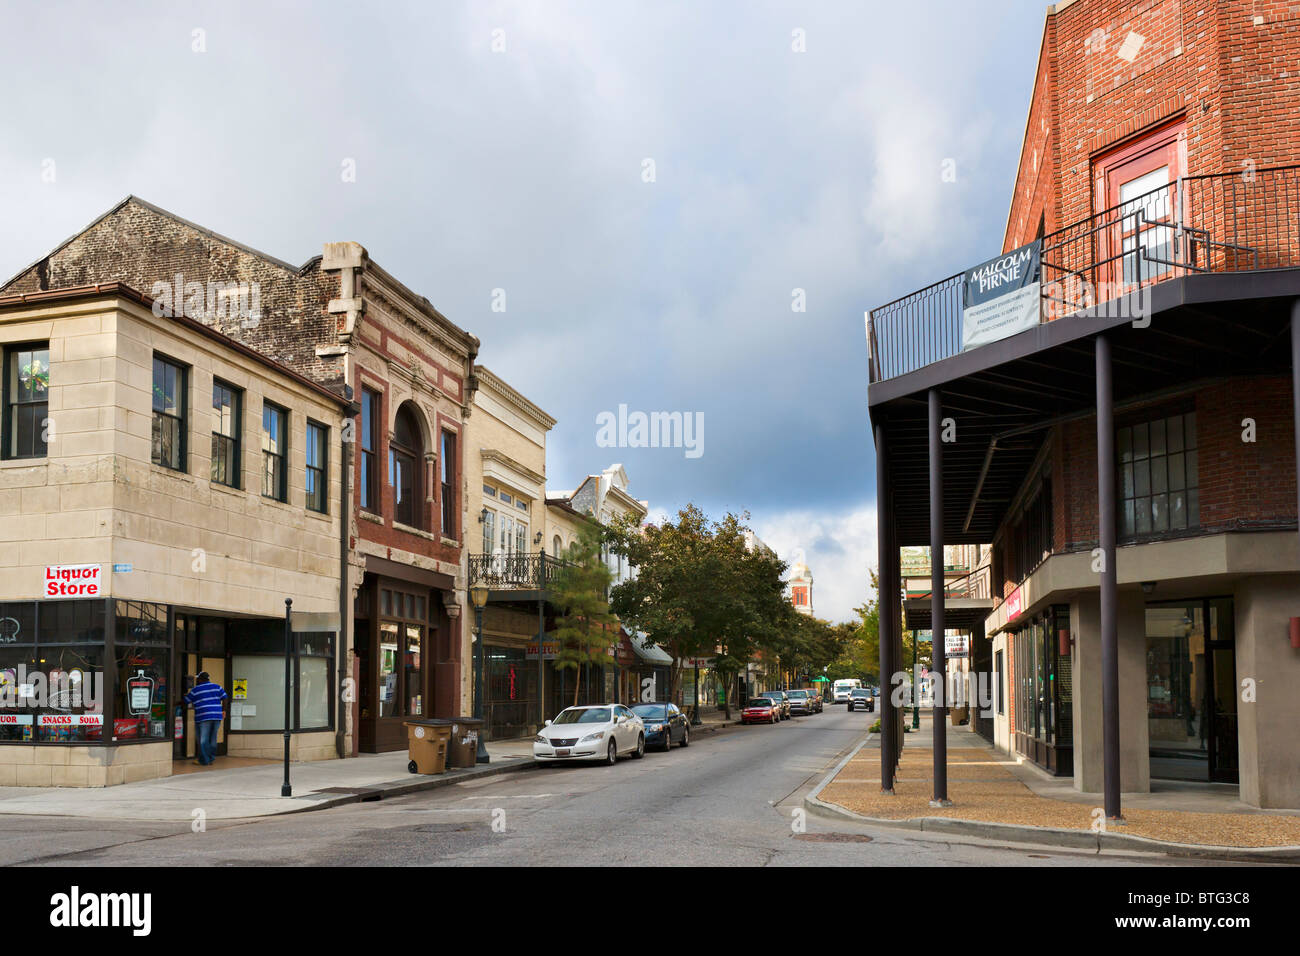 Dauphin Street in the historic old town, Mobile, Alabama, USA - Stock Image